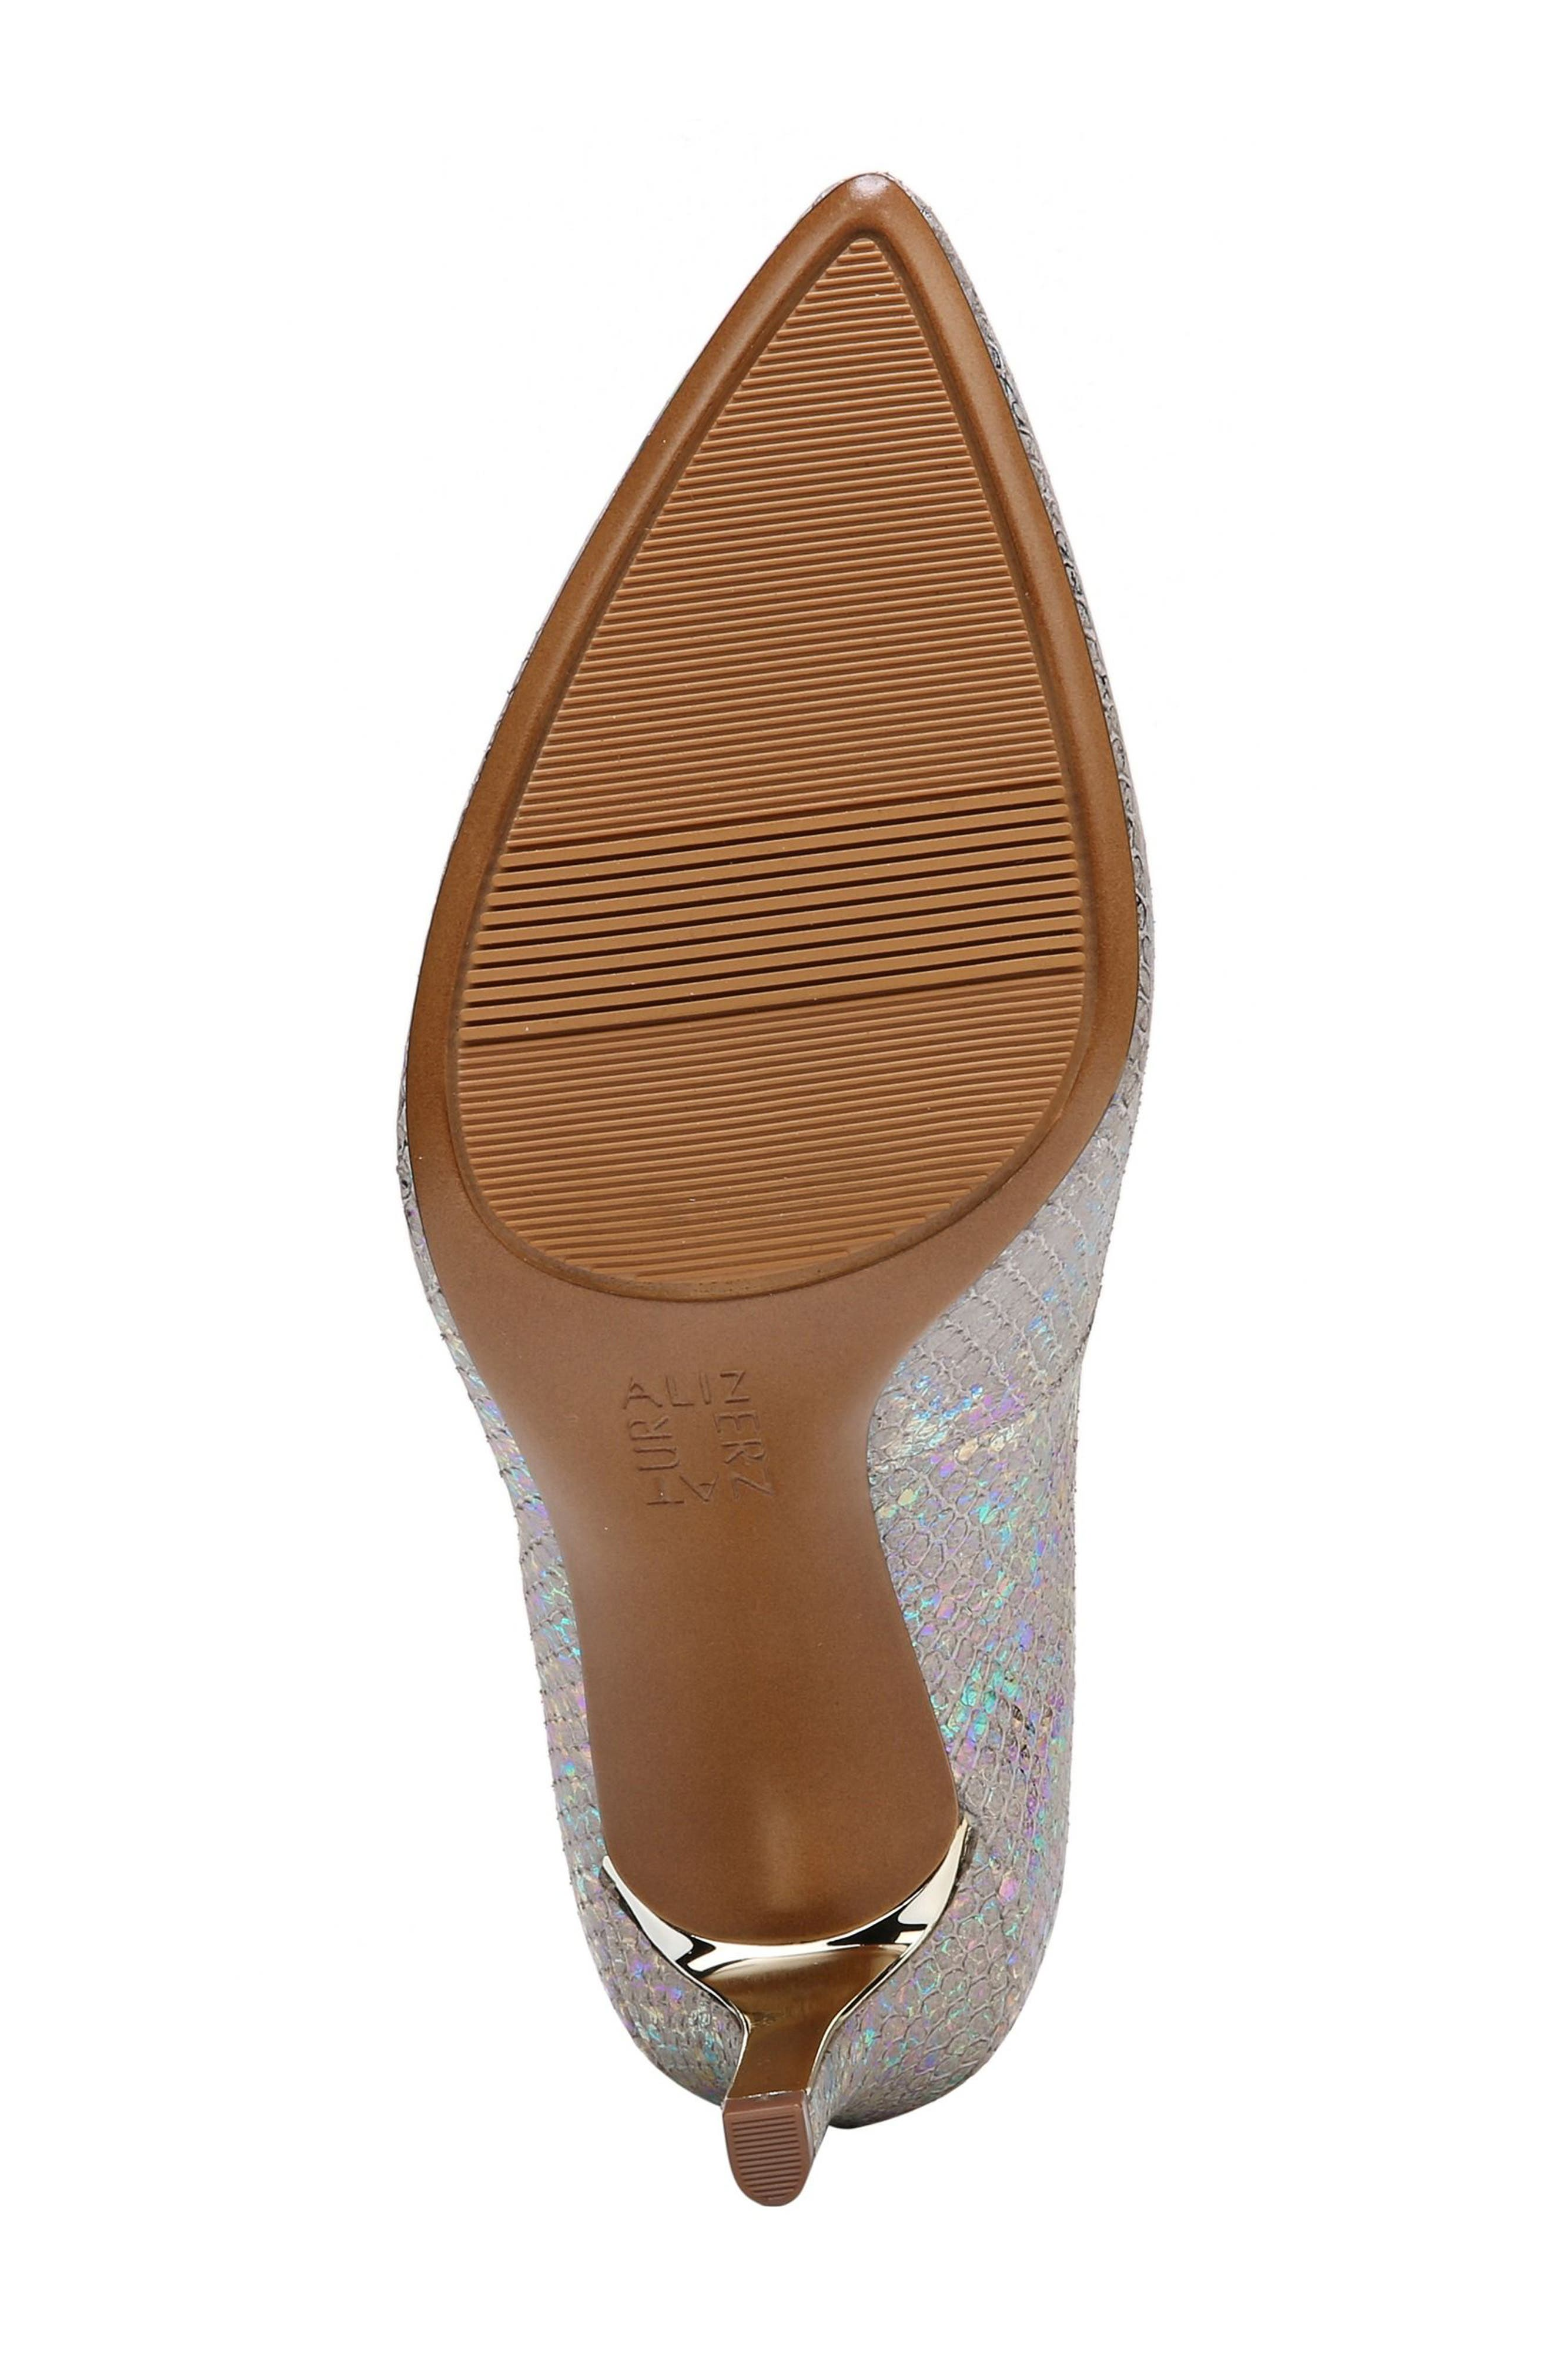 Natalie Pointy Toe Pump,                             Alternate thumbnail 6, color,                             Silver Snake Print Leather